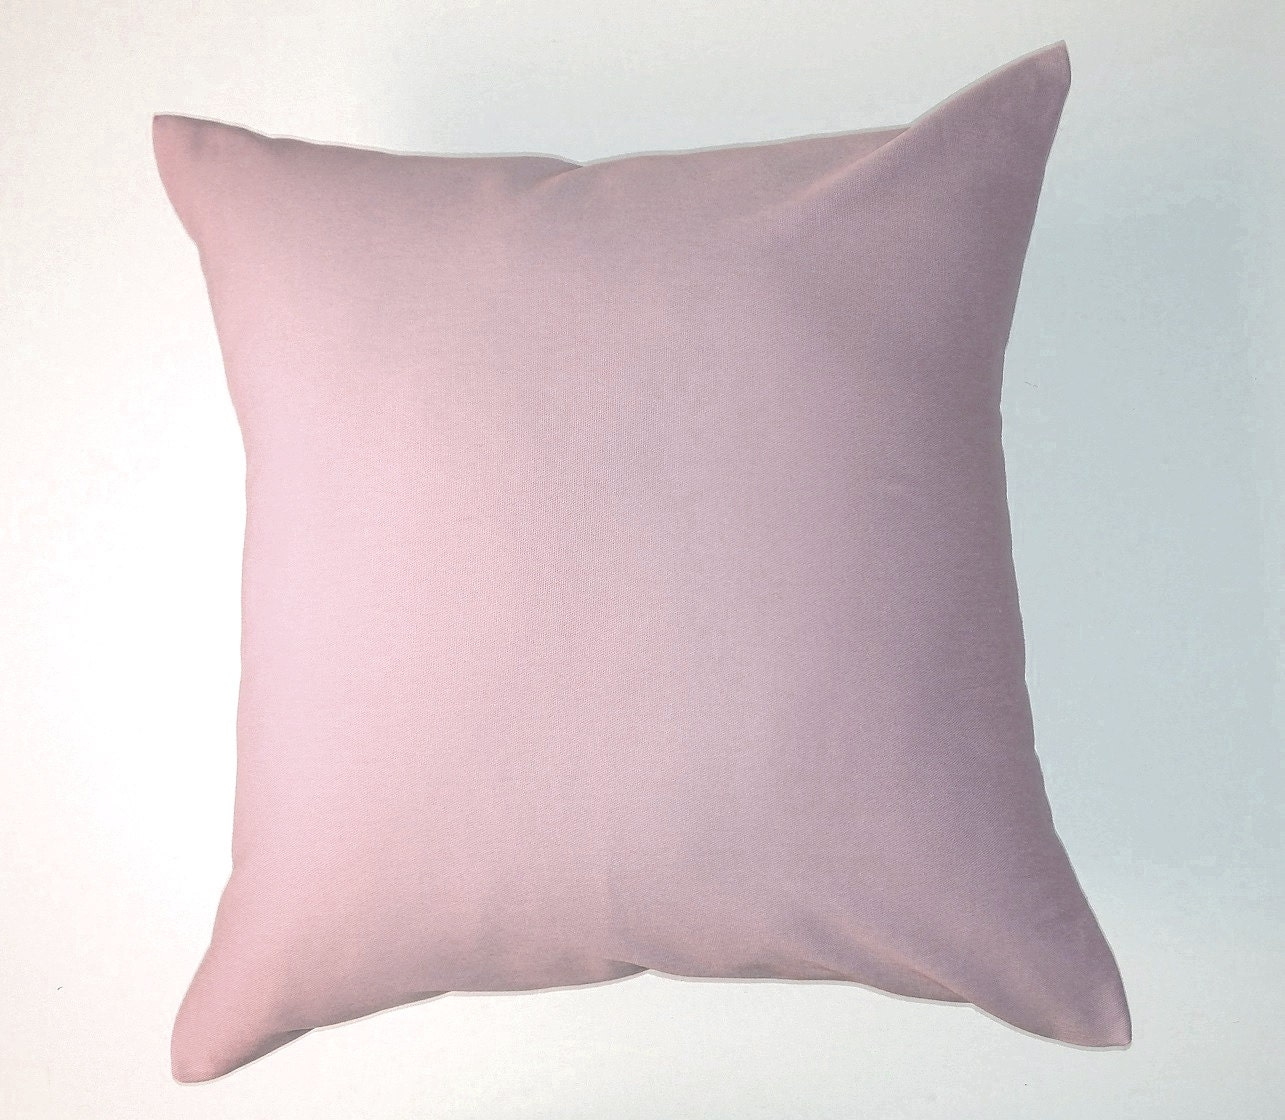 Light Pink Ruffle Throw Pillow : Light pink pillow pillows throw pillows solid pillow